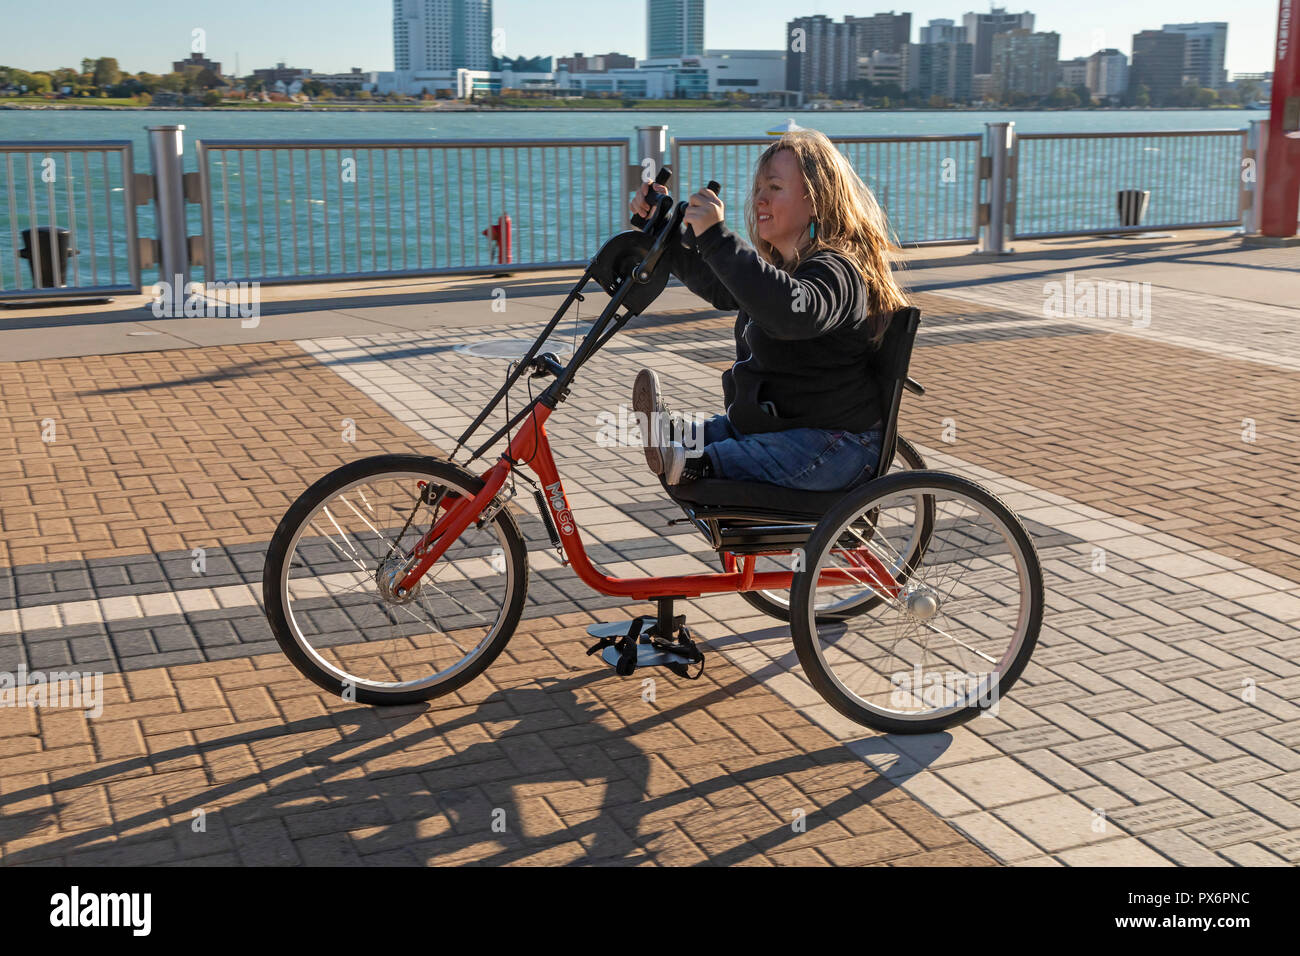 Detroit, Michigan - People try out adaptive bicycles, now offered through MoGo, Detroit's bike share system. The adaptive bikes are designed for peopl Stock Photo